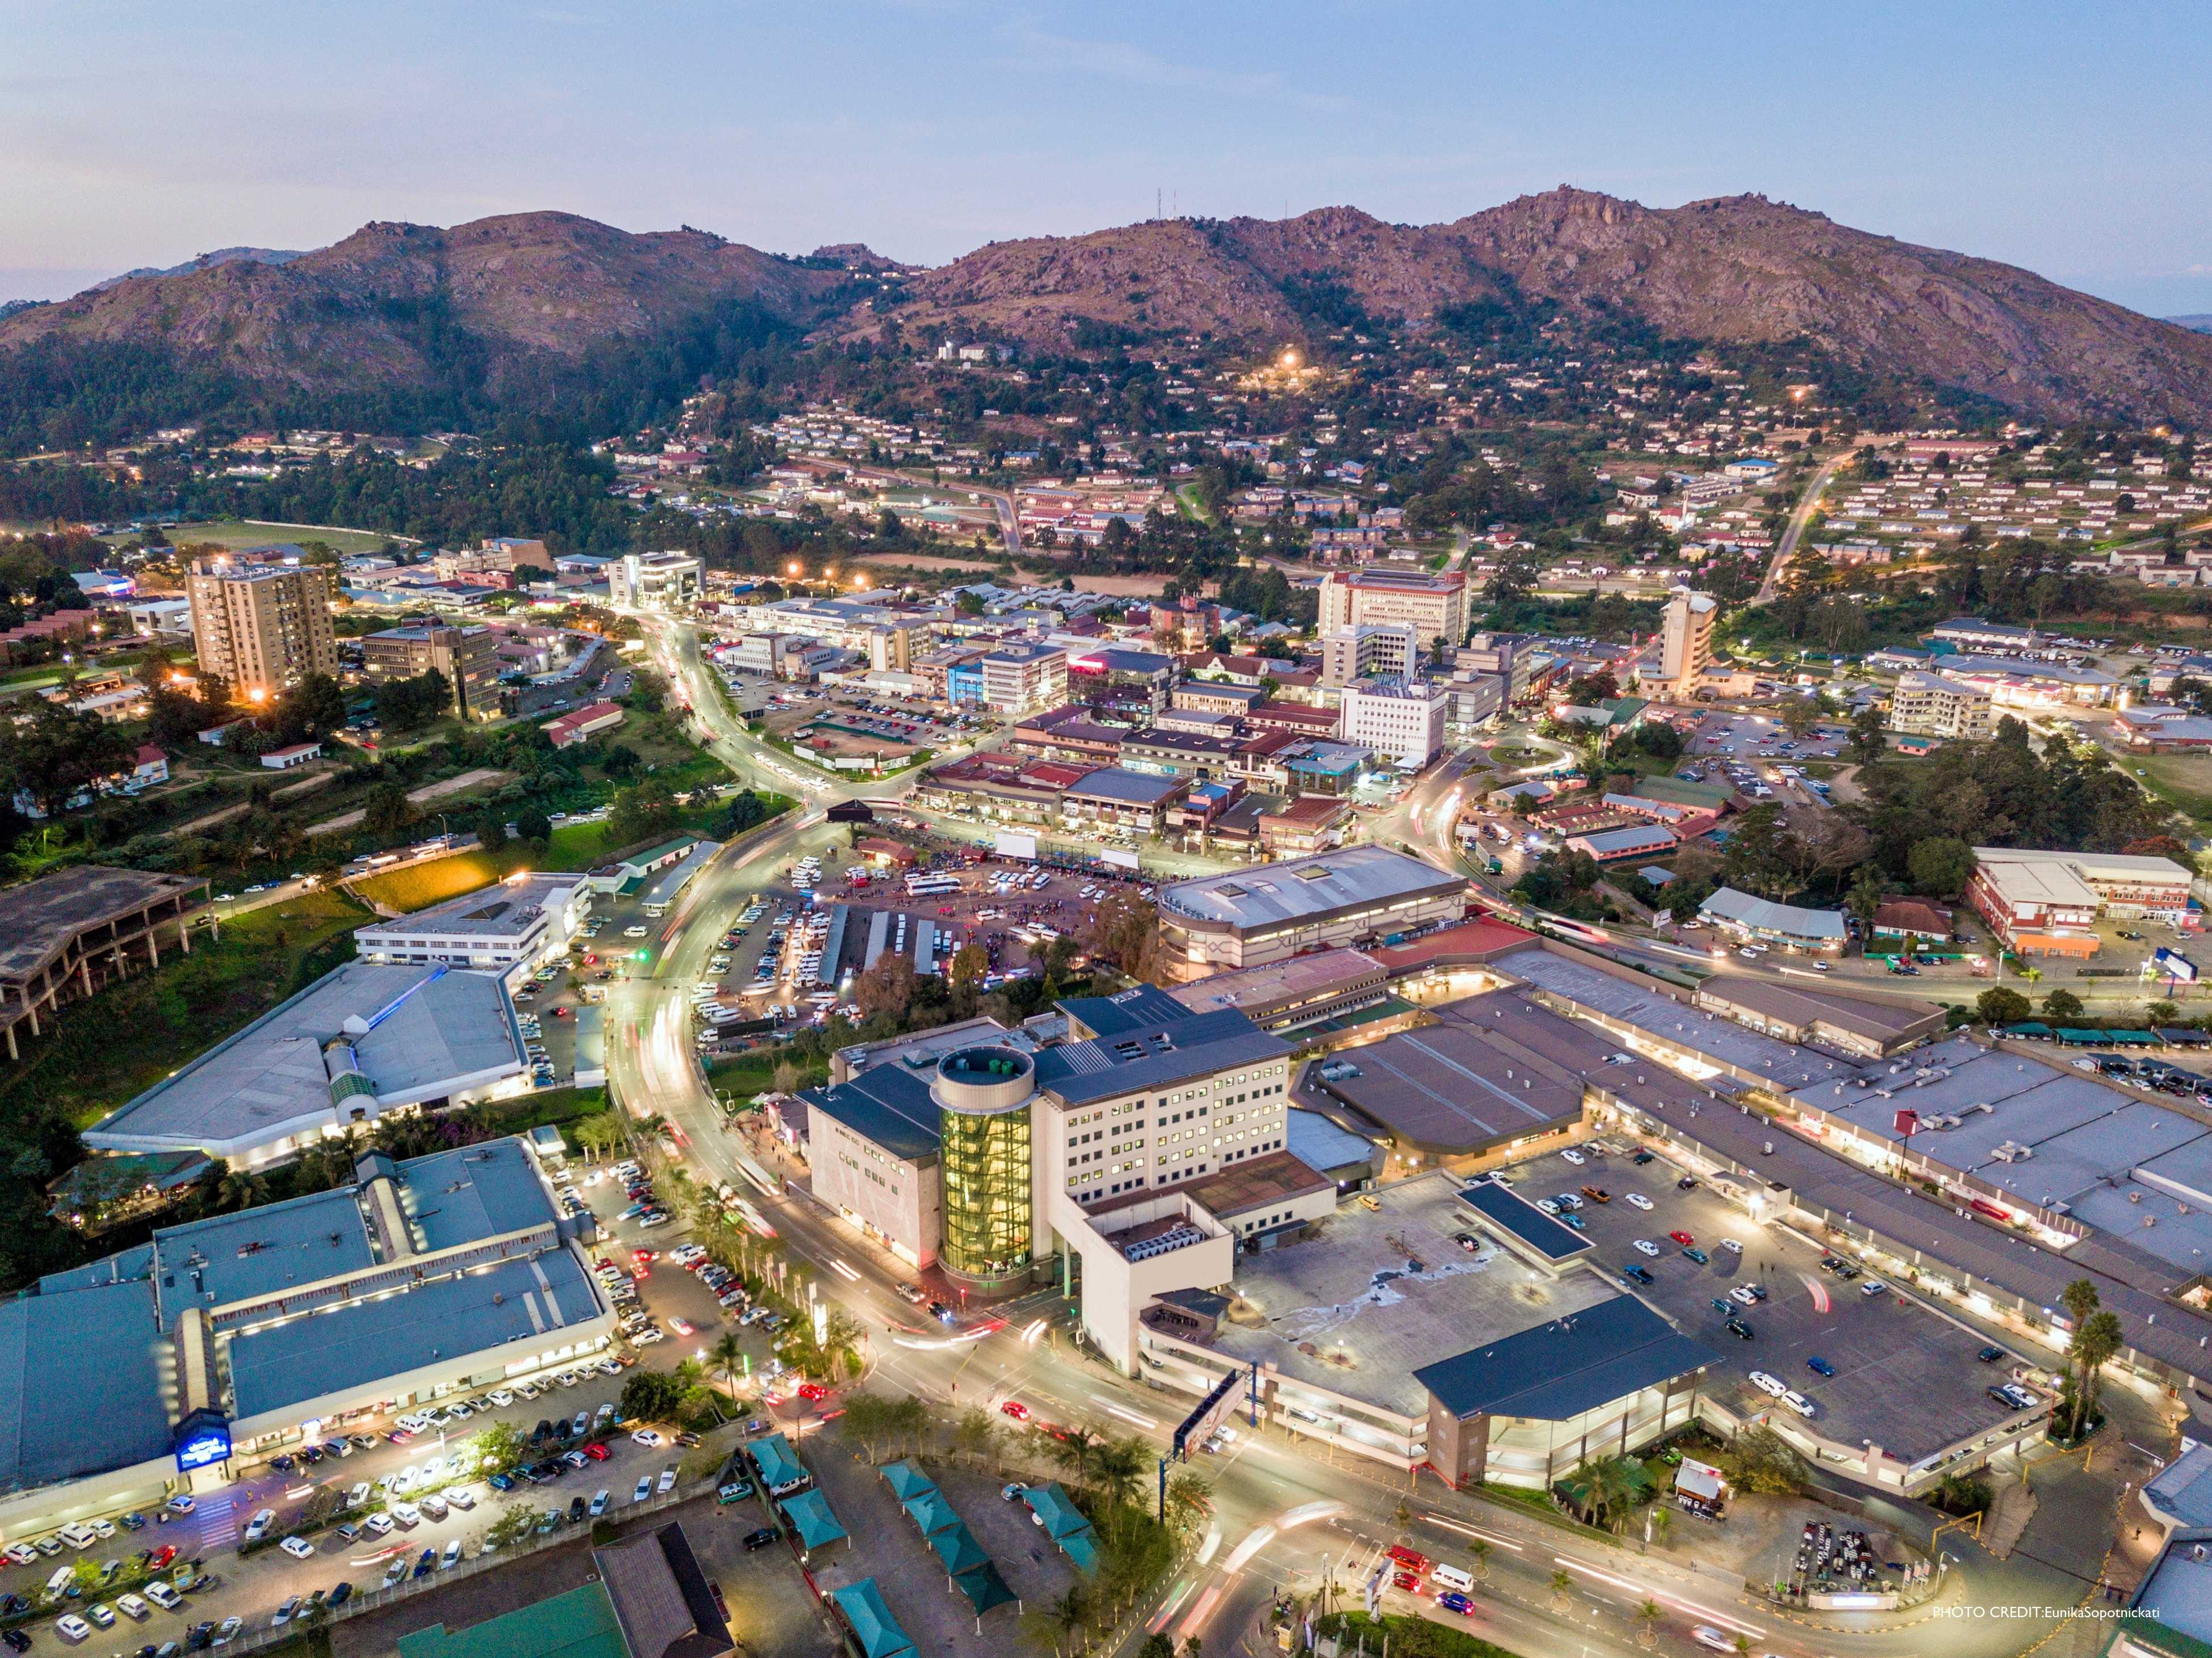 Downtown Mbabane